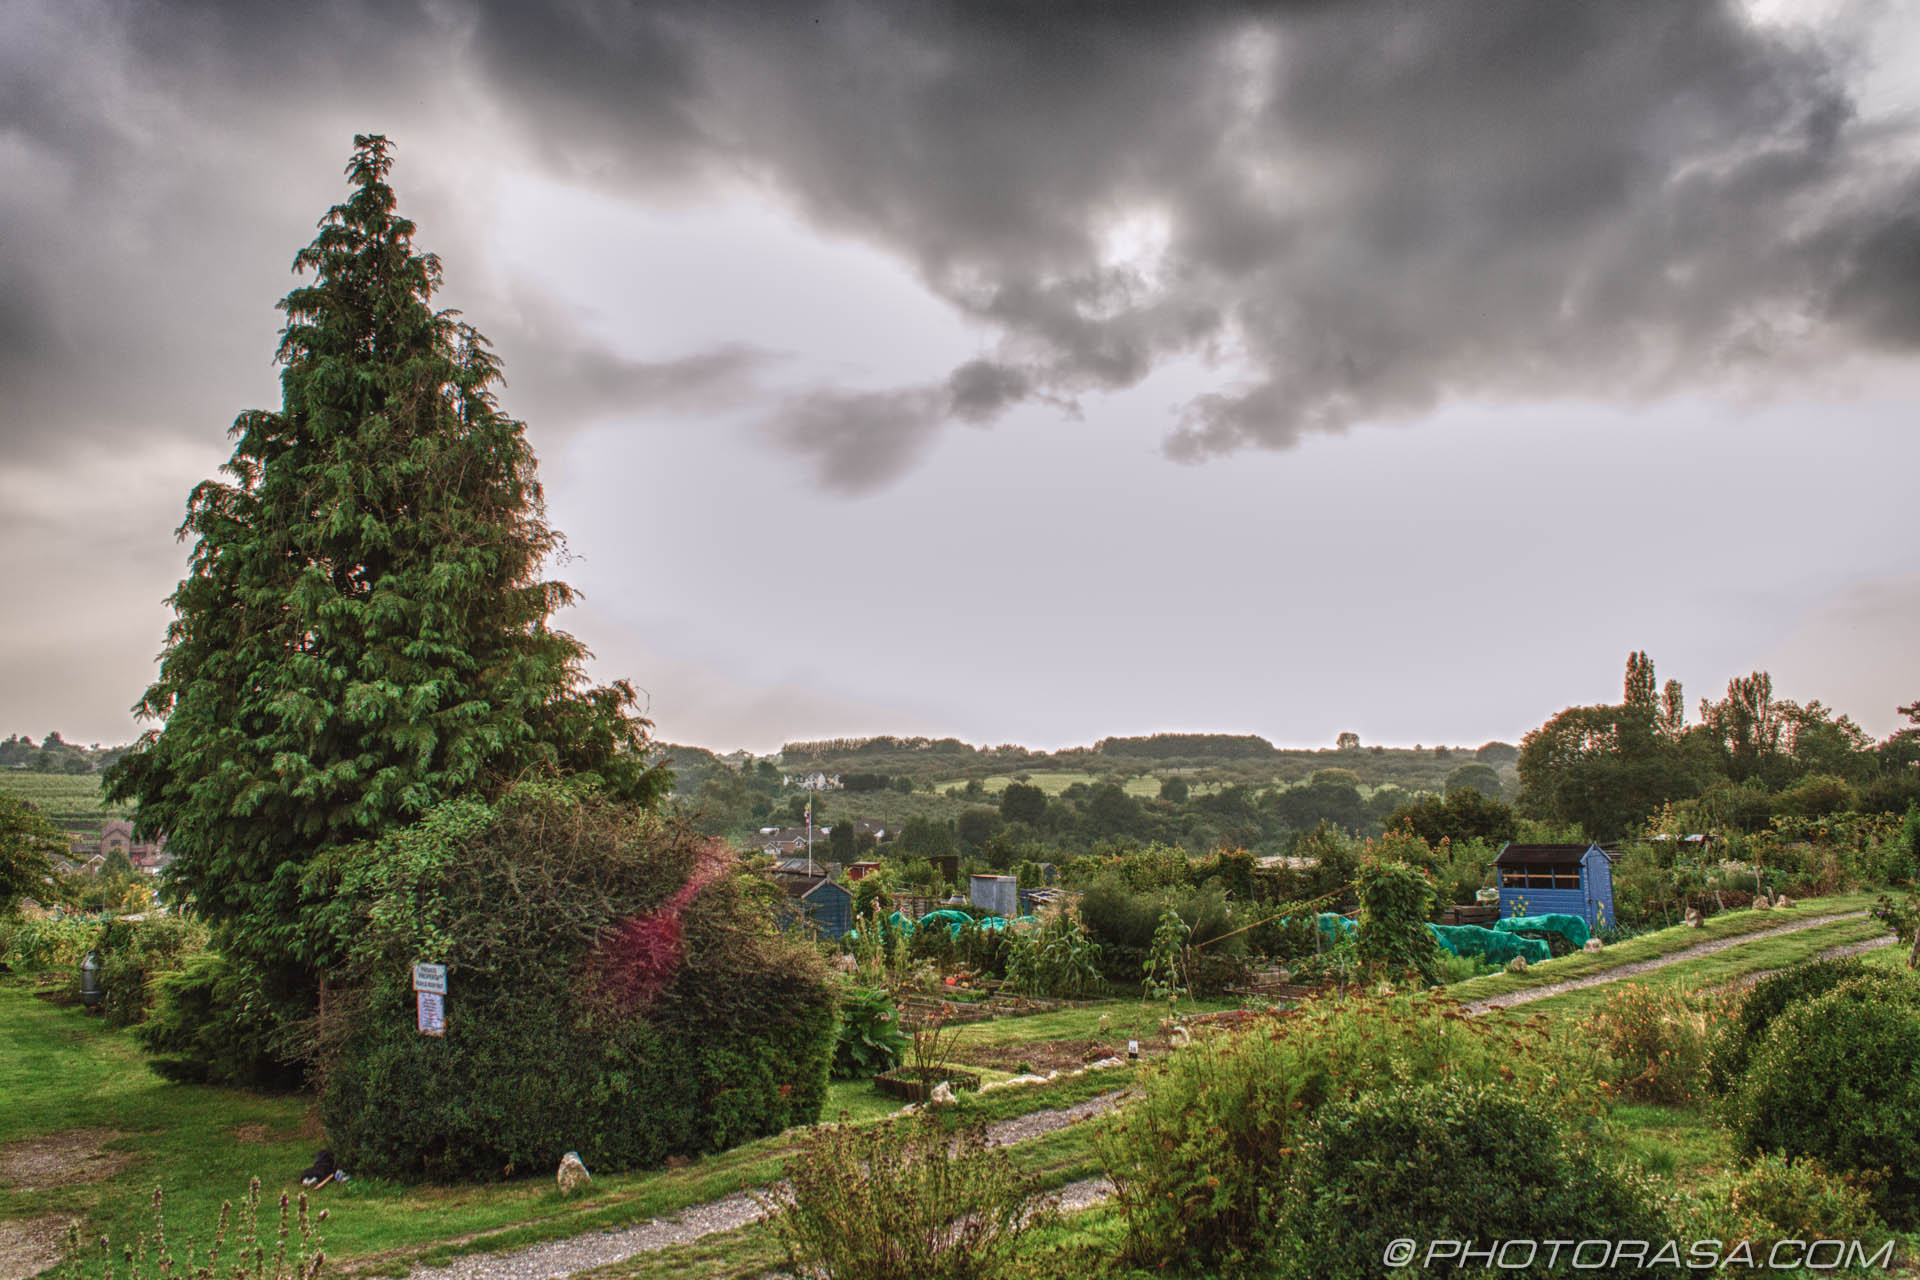 http://photorasa.com/loose-village/dark-clouds-over-the-allotment/